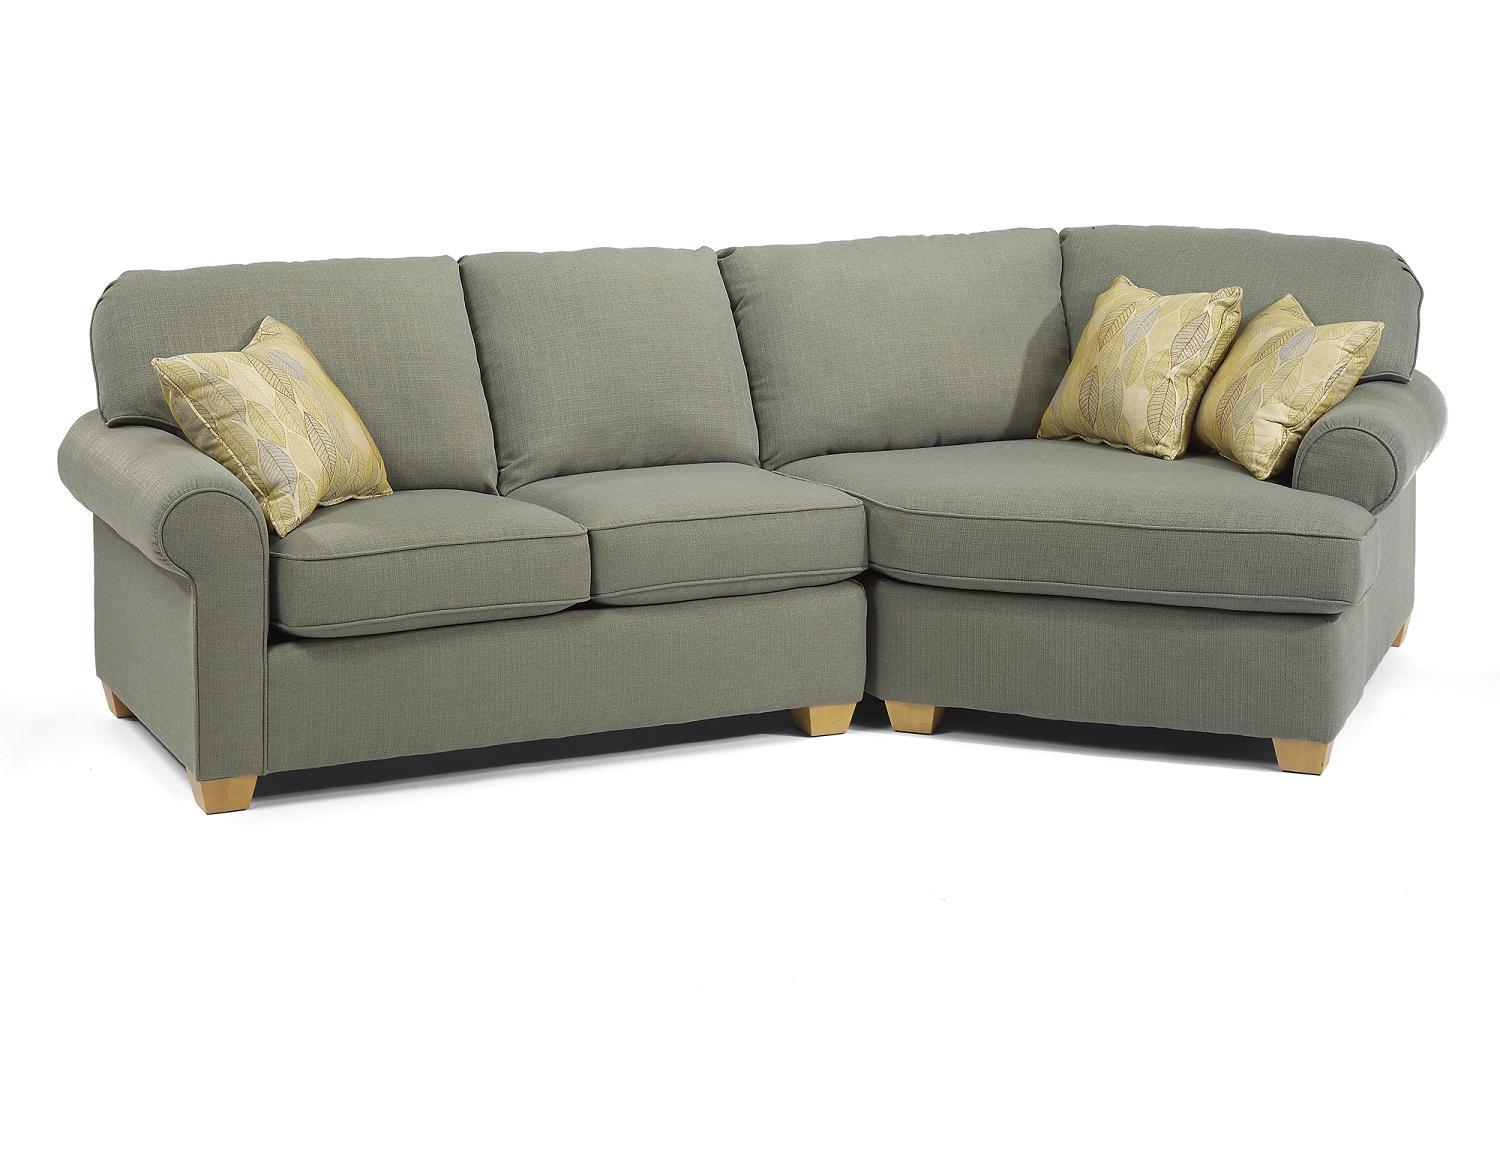 Small Sectional Sofa With Chaise | Home Decor & Furniture In Cheap Small Sectionals (Image 14 of 15)